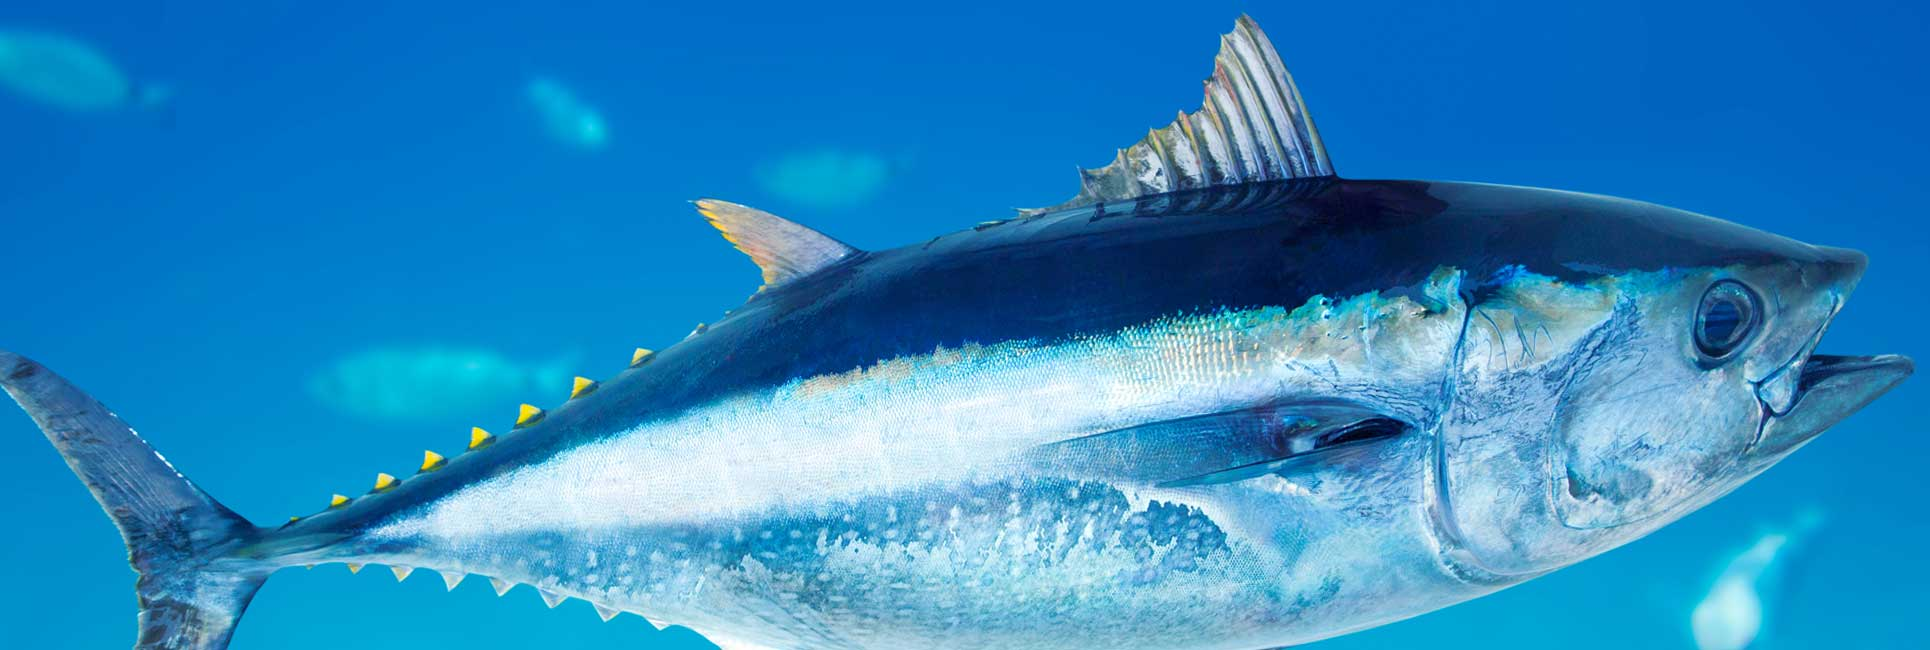 blue fin tuna fish swimming in water